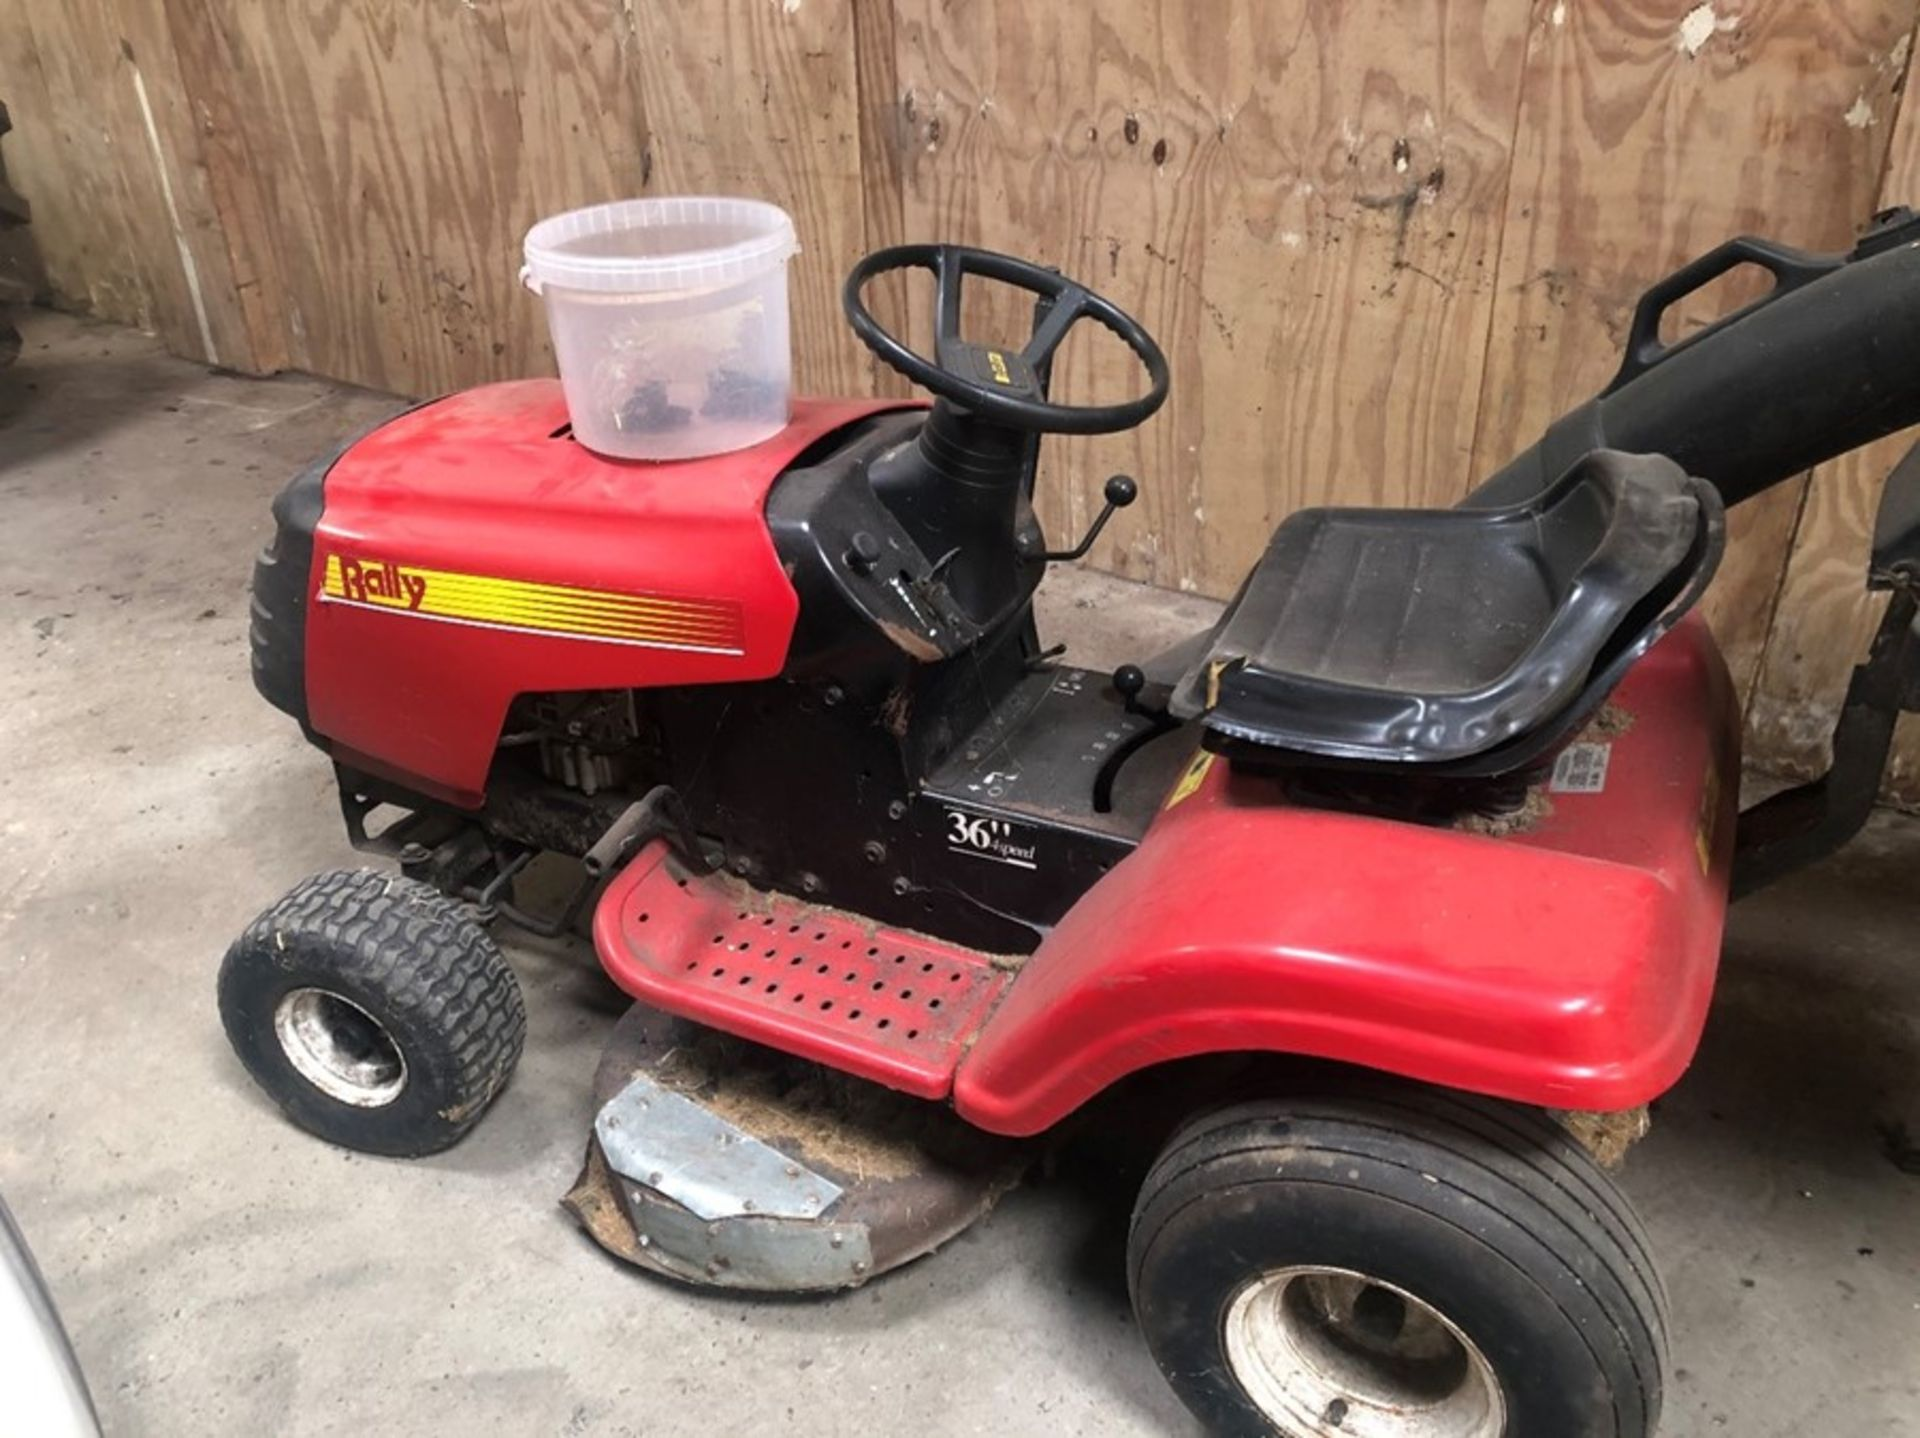 Rally ride on mower 36in, needs new engine